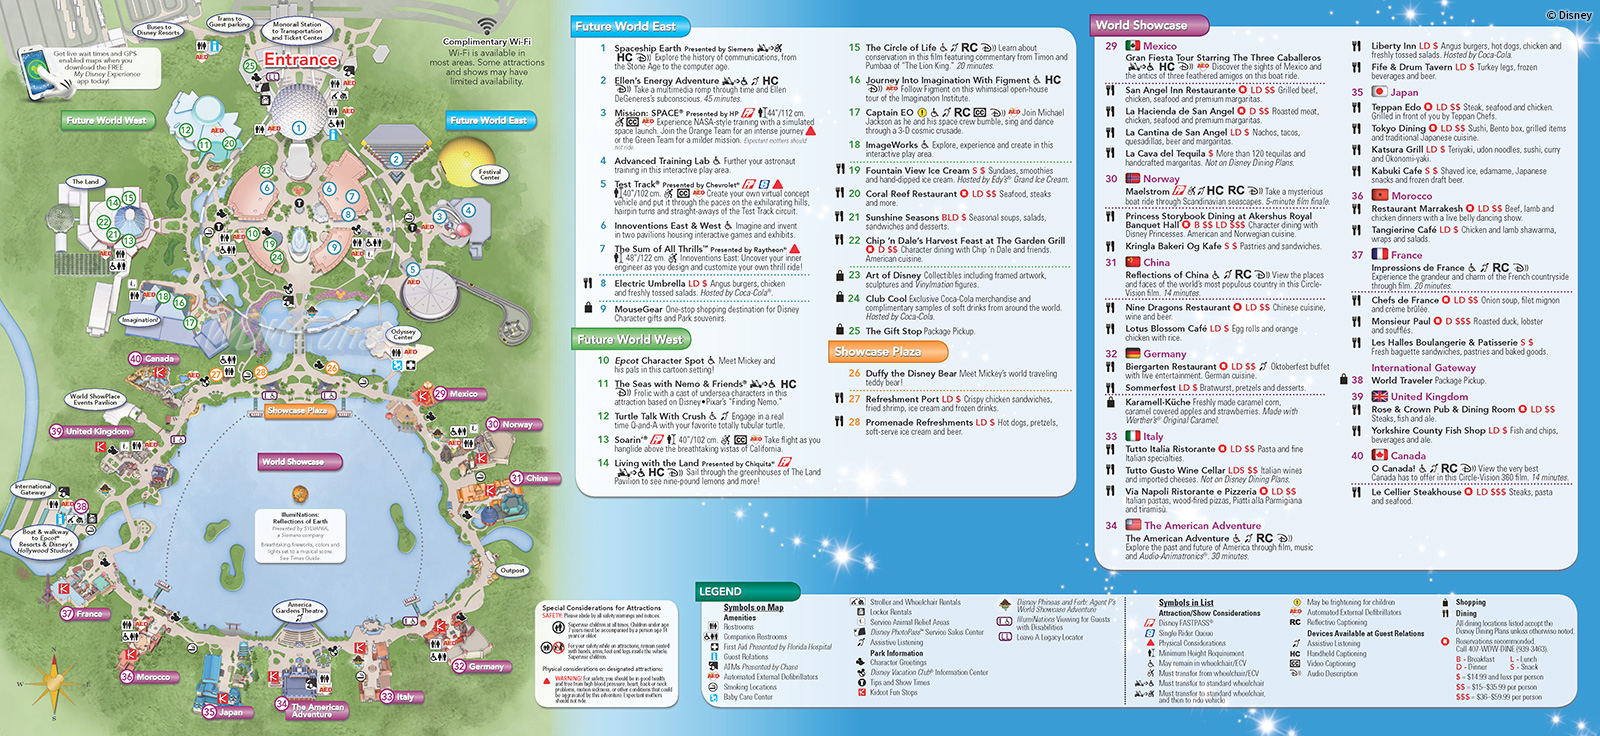 2013 Epcot Park Map - Walt Disney World Park Maps - WDWFans